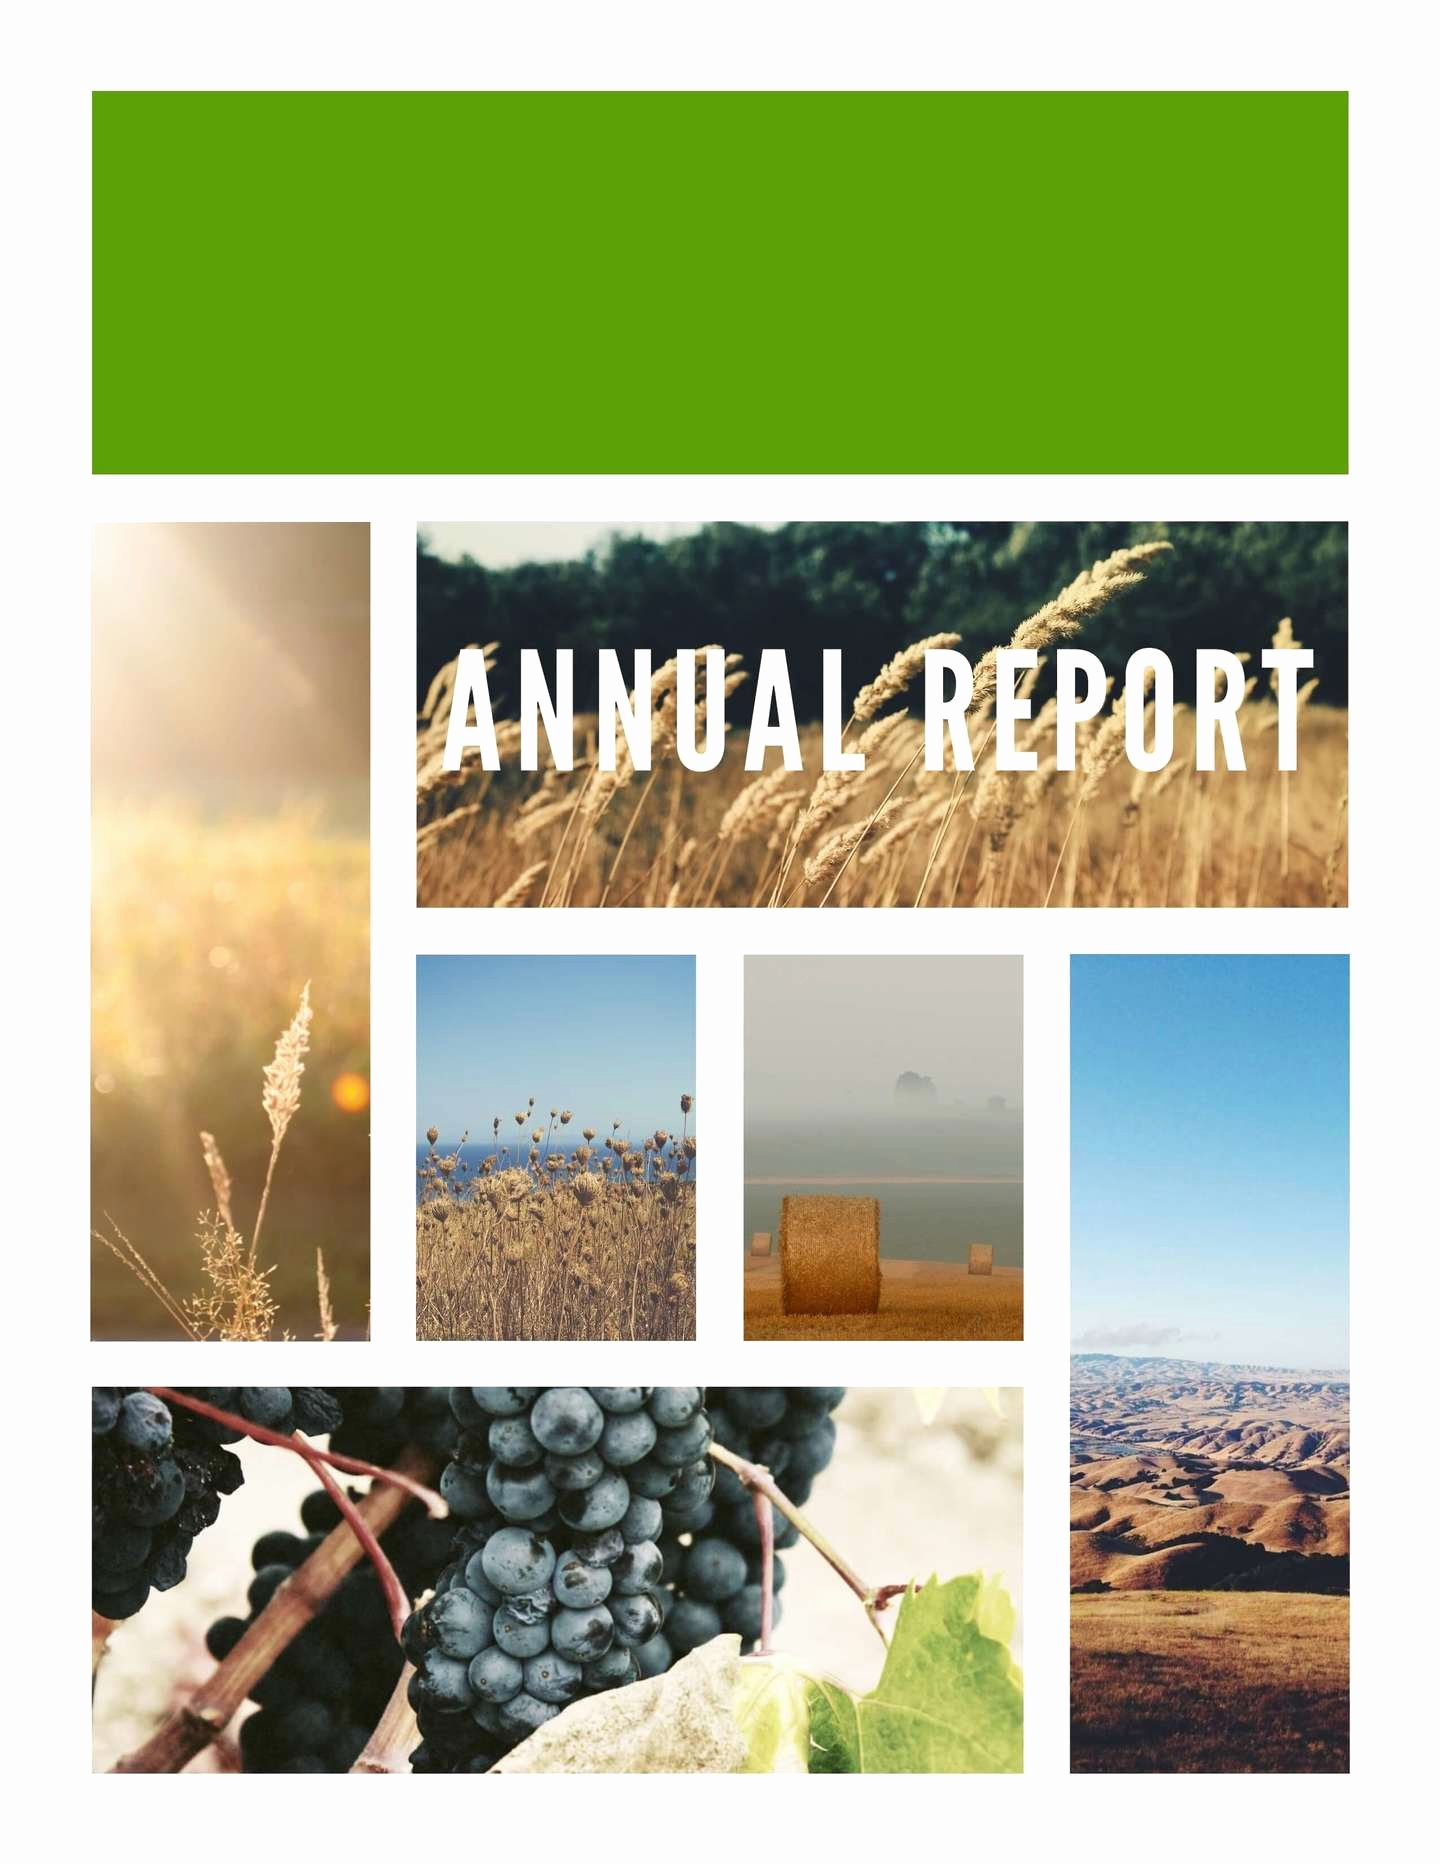 Free Annual Report Template Best Of Free Annual Report Templates & Examples [6 Free Templates]